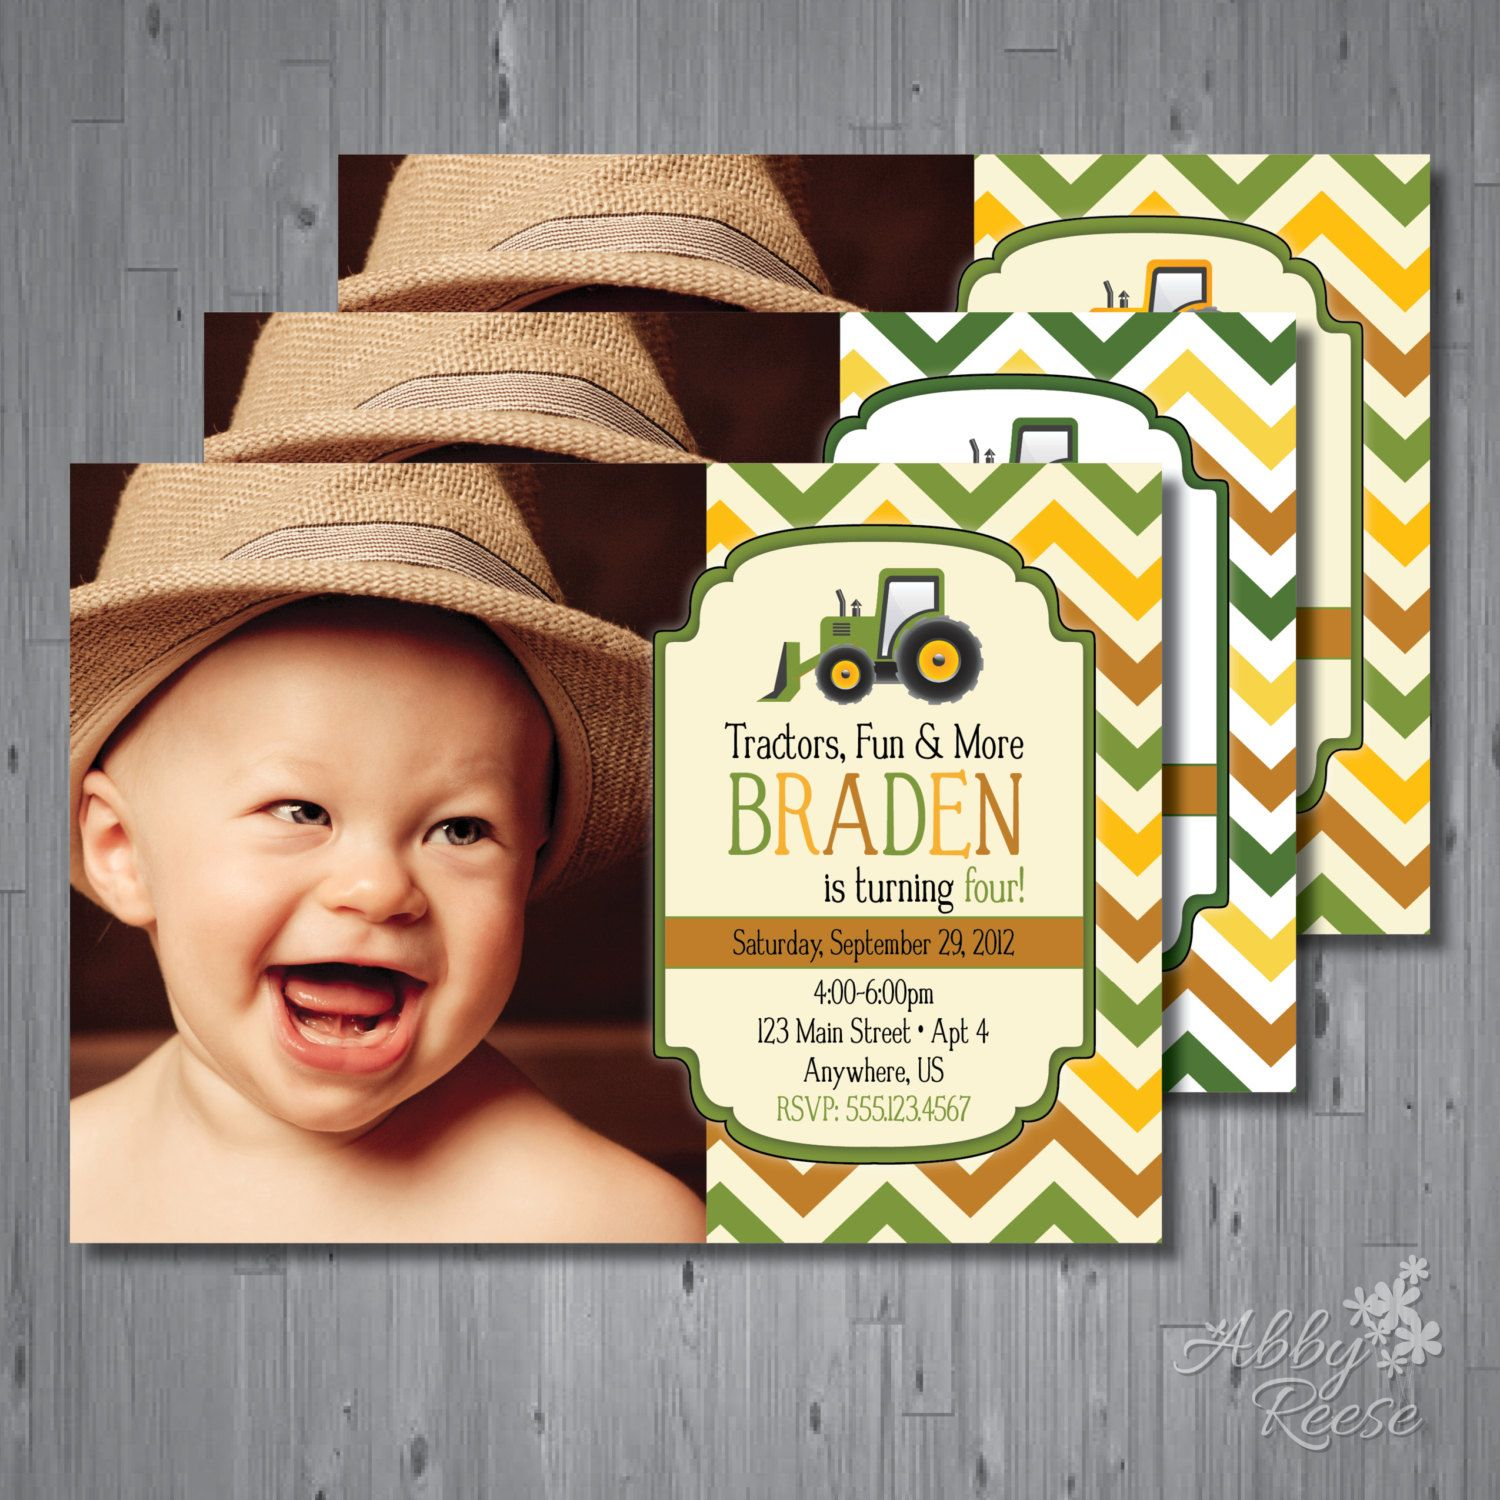 25 off TRACTOR FREE thank you card invitation DIGITAL file